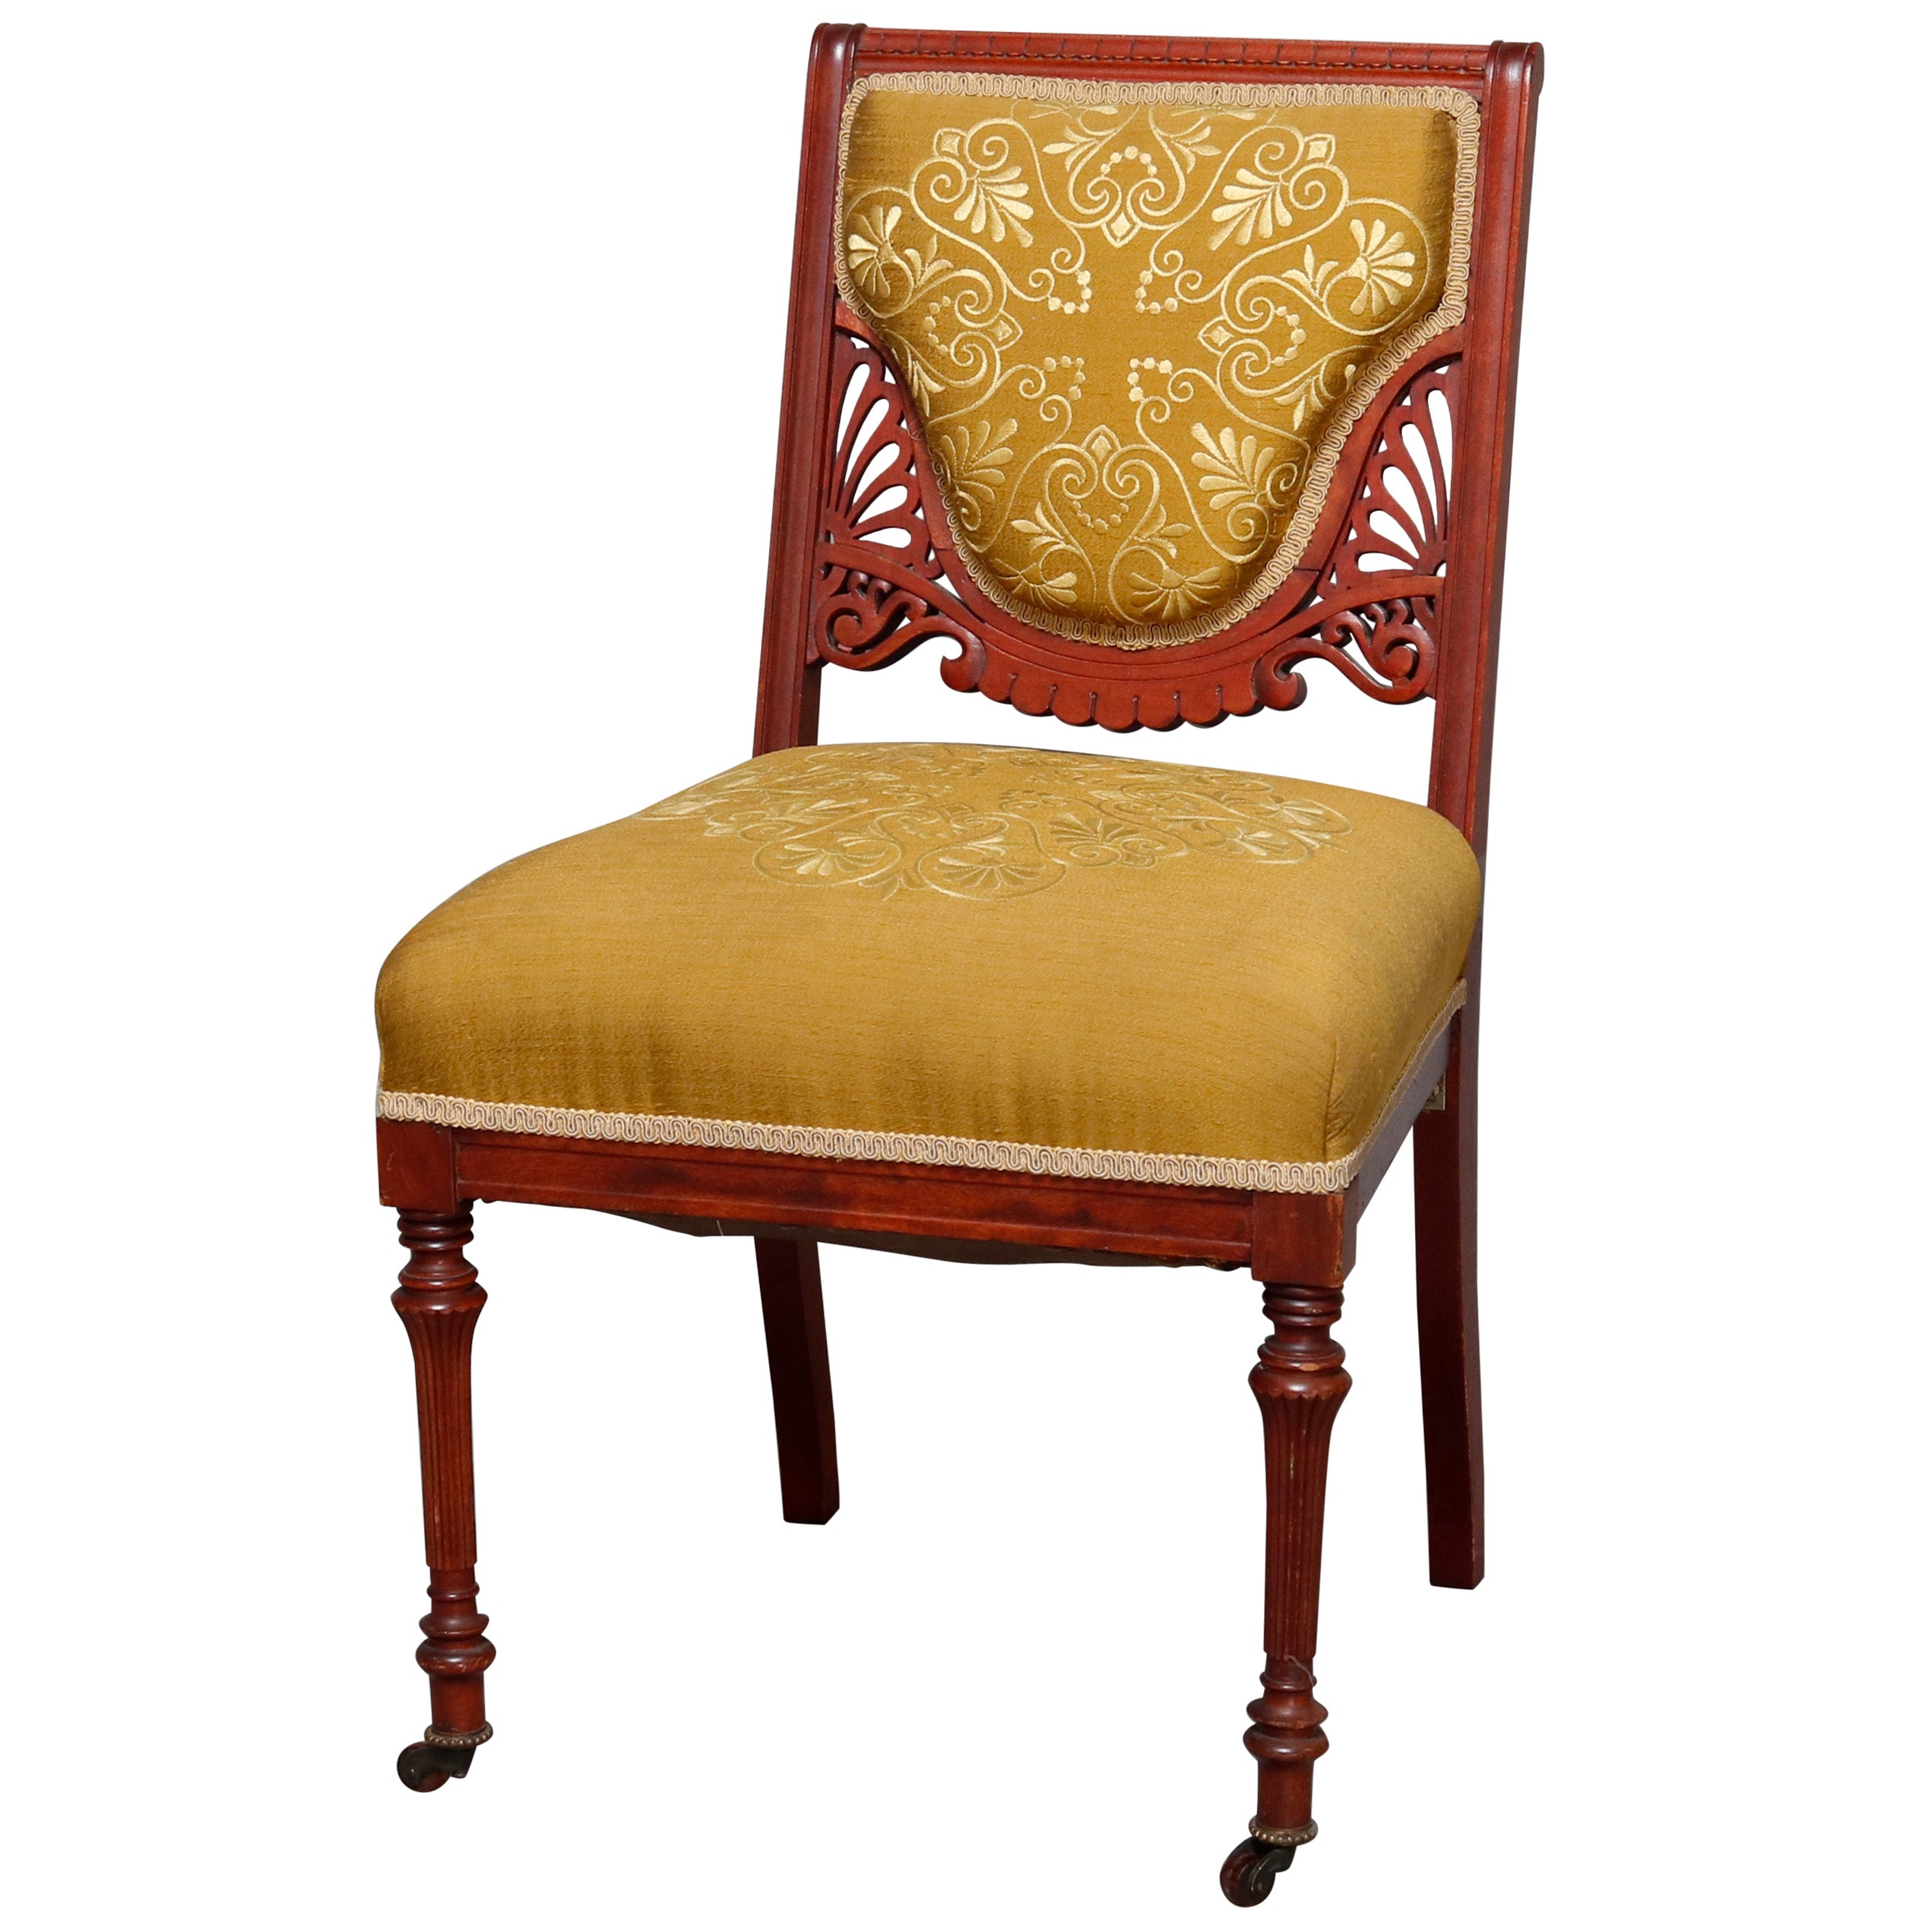 Antique Victorian Eastlake Carved Walnut Upholstered Side Chair, 20th Century